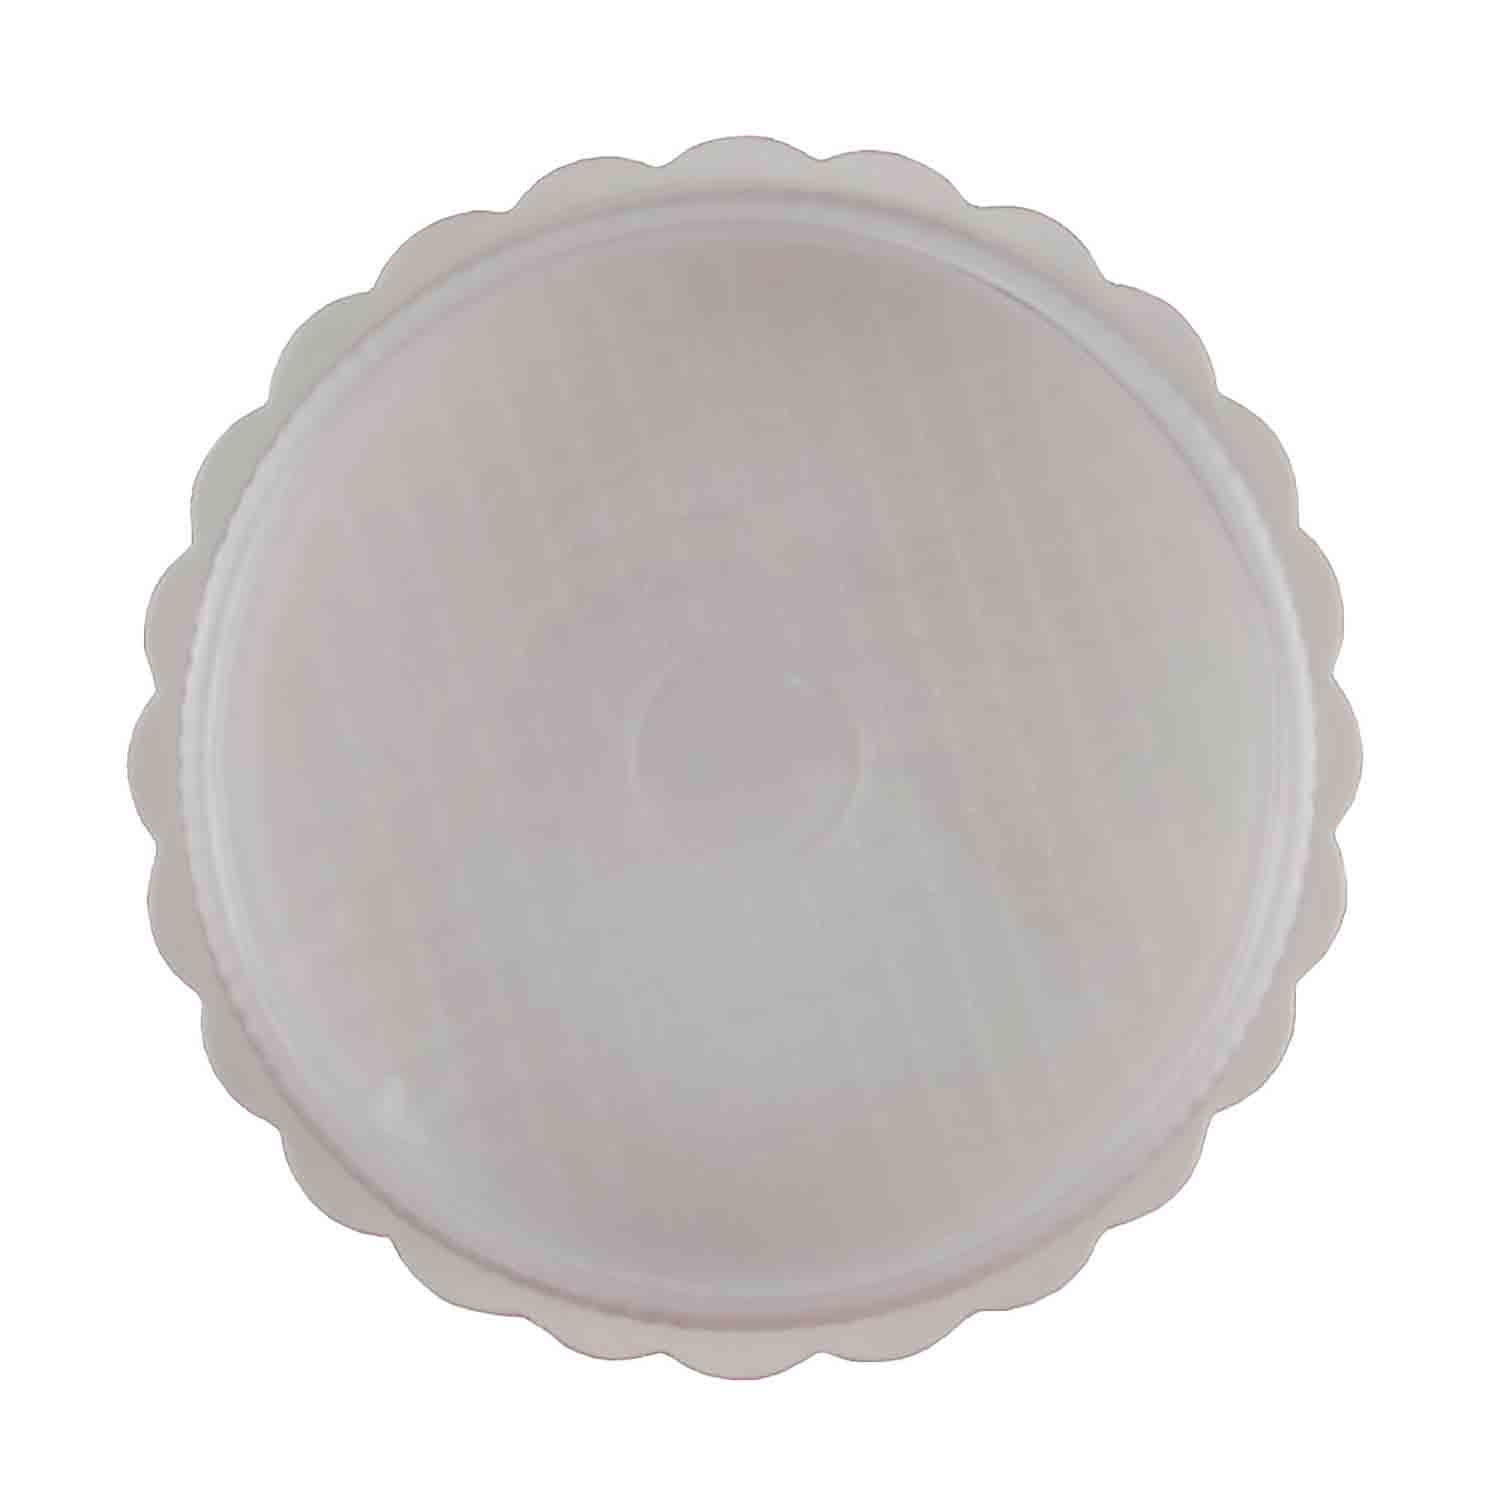 1/8 lb. White Candy Box with Clear Lid